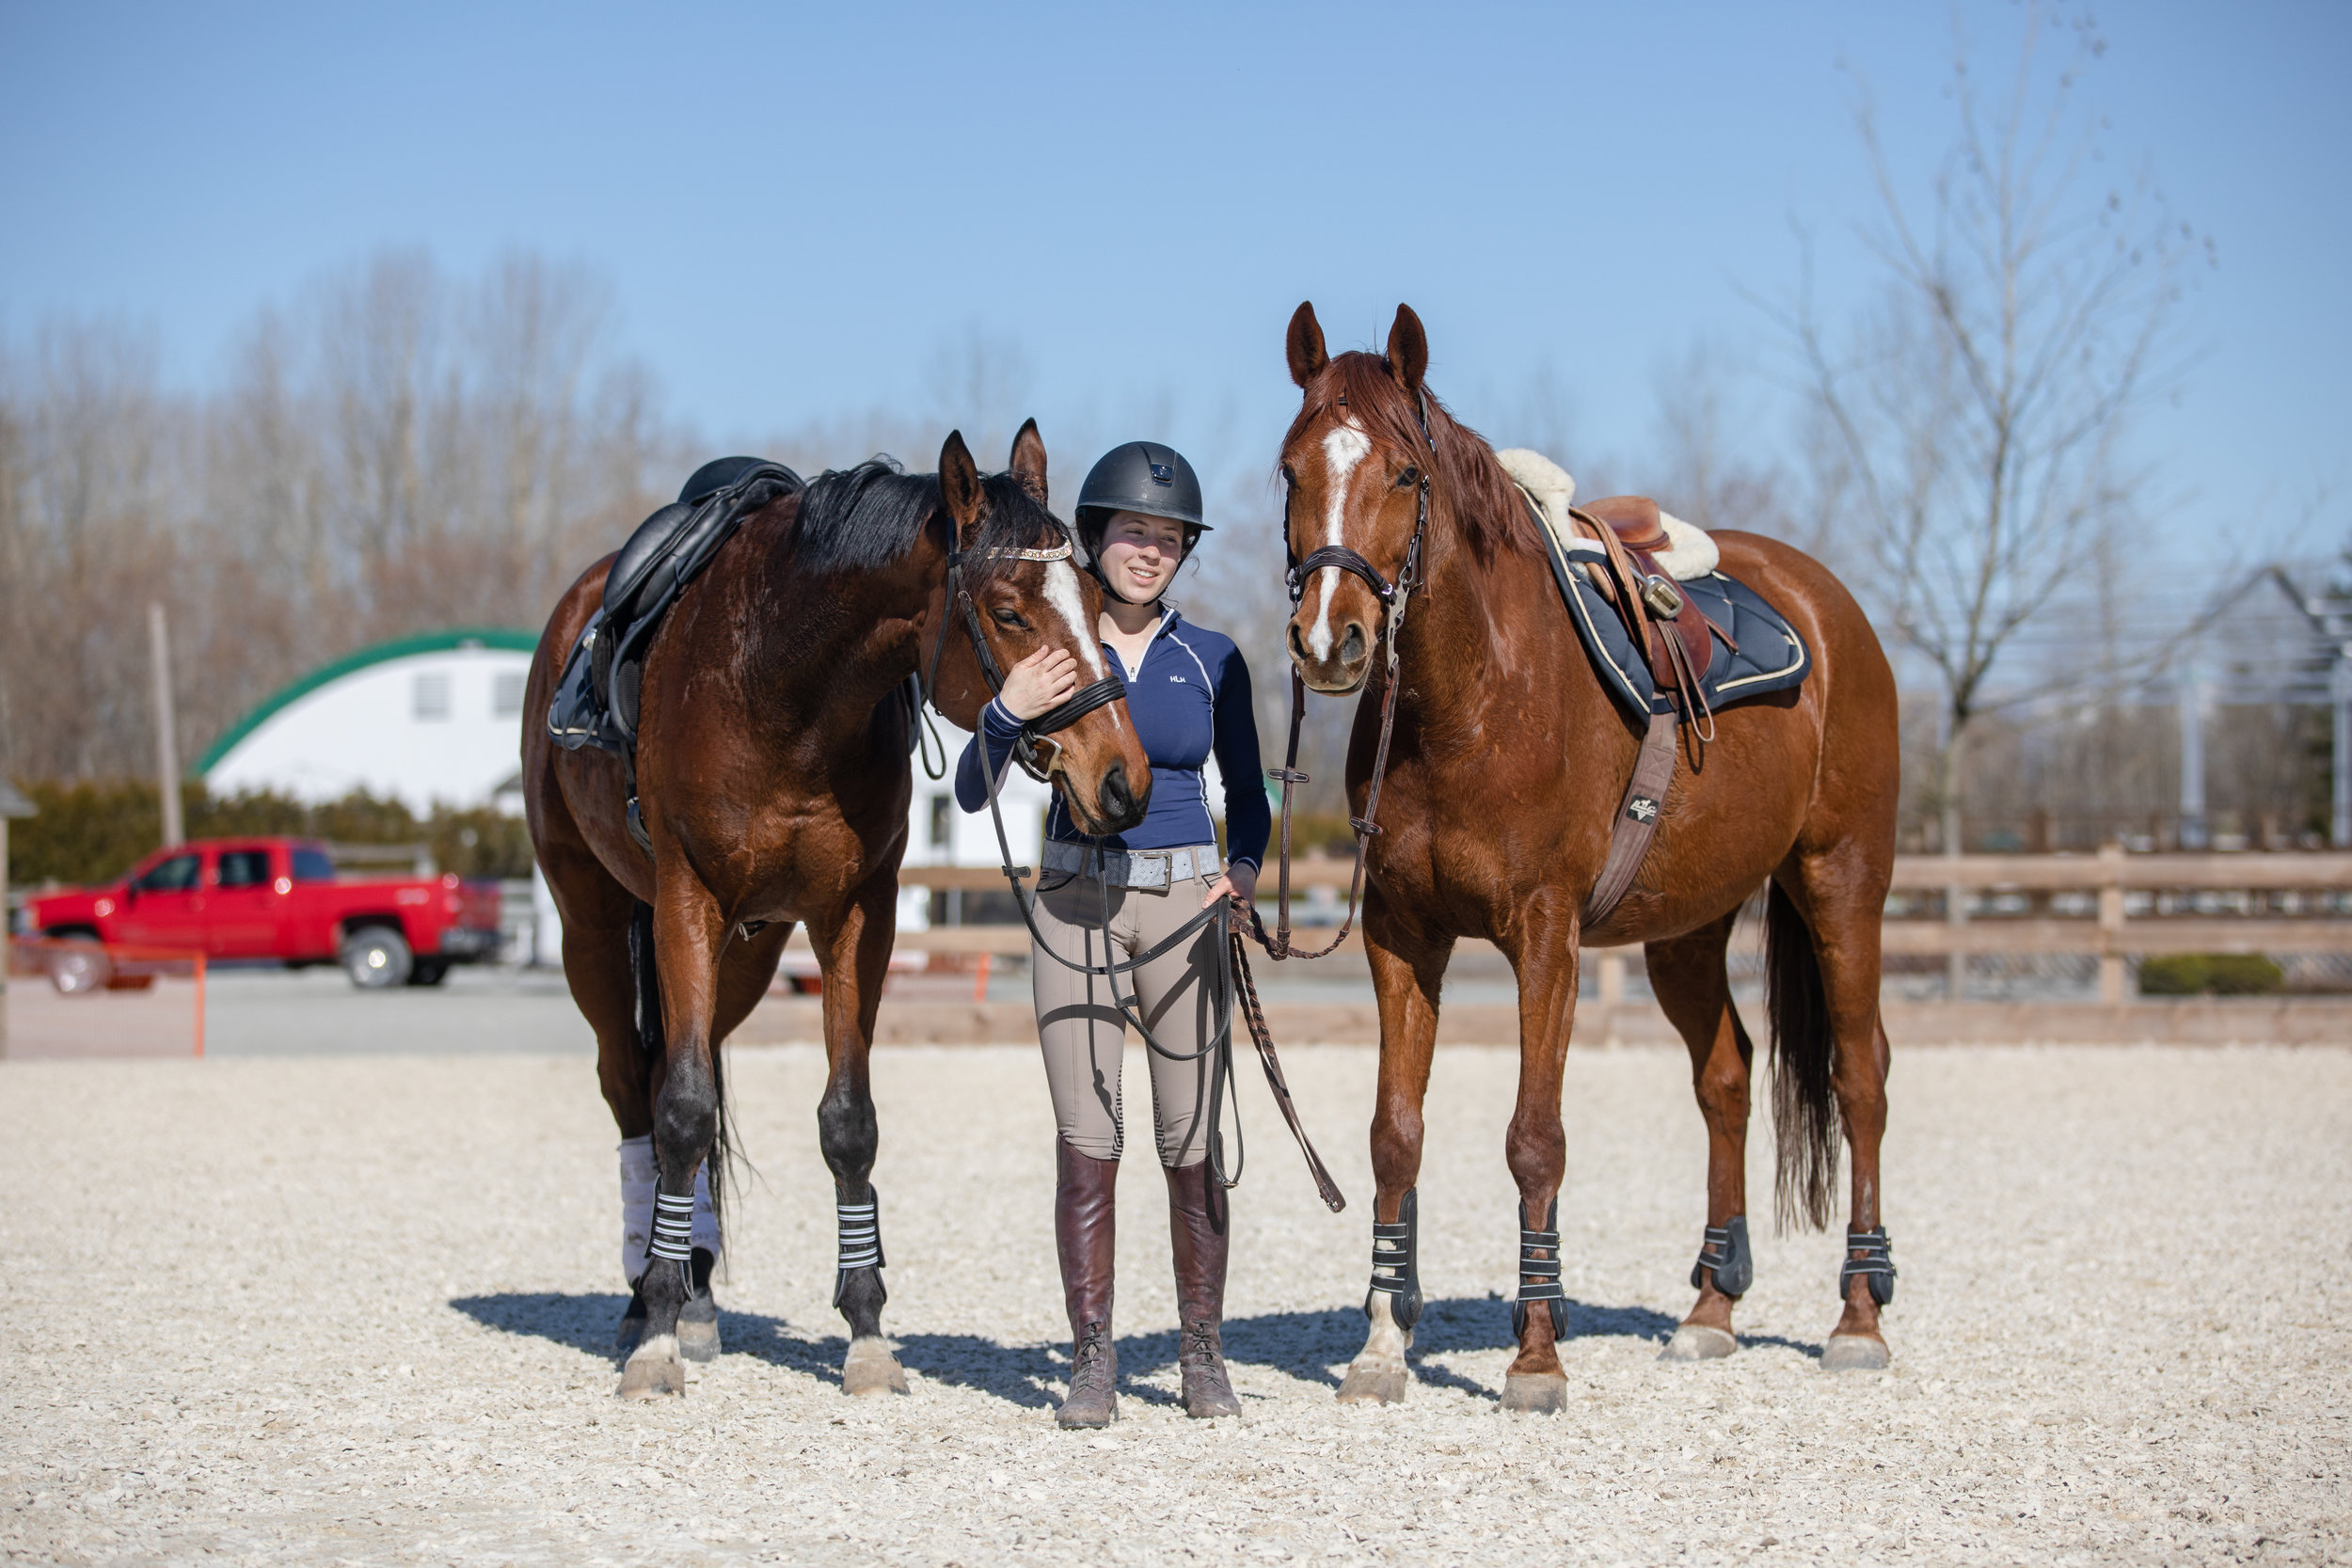 23 years old, declared pro with my two show horses.